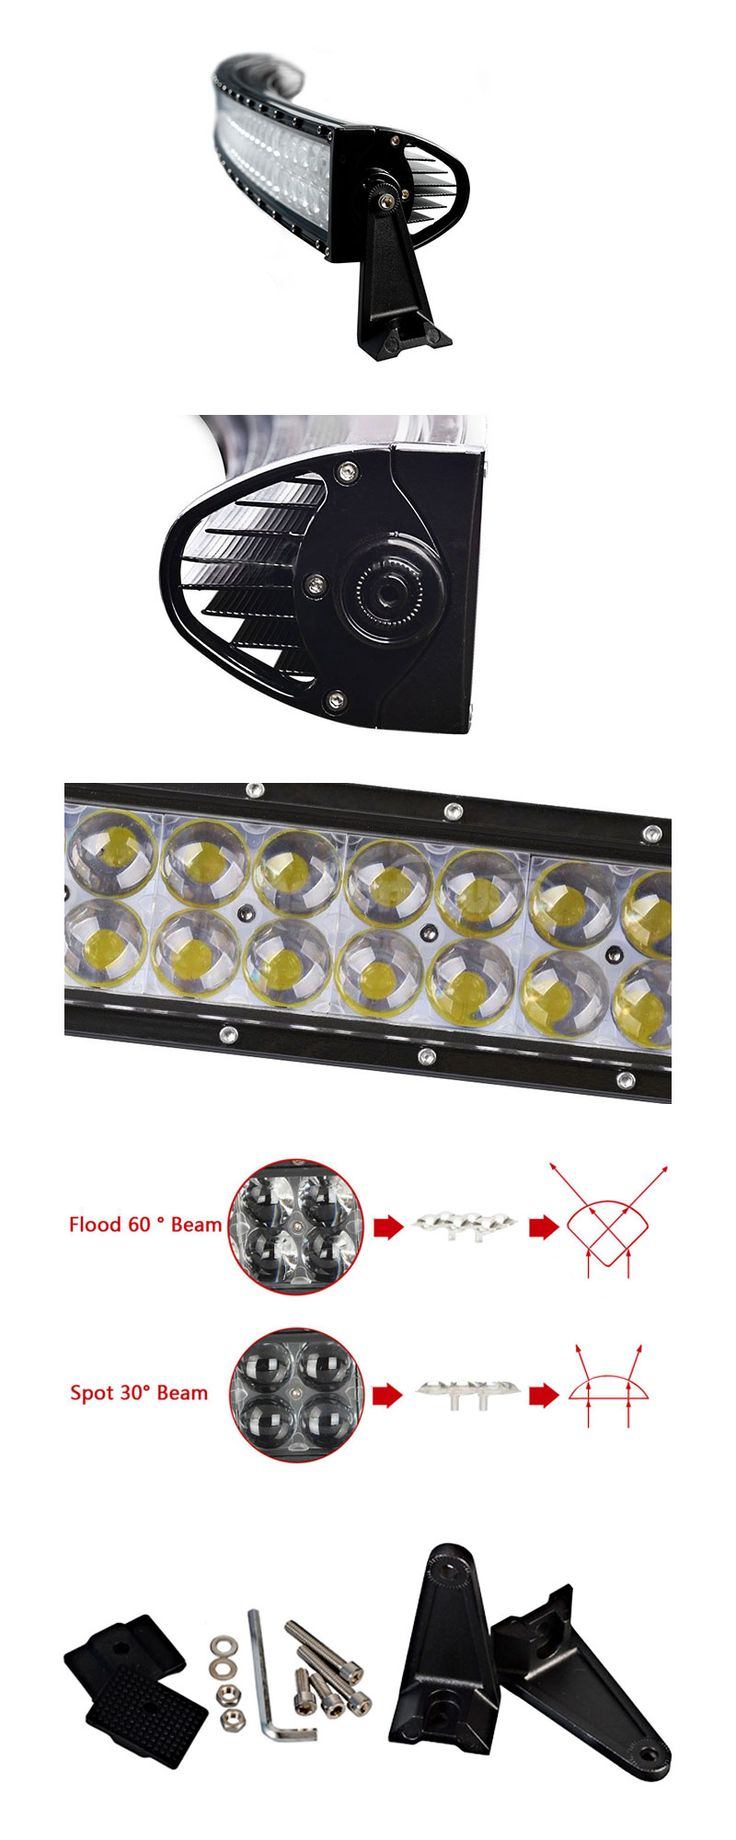 Epic The brief show of LED Light Bars for Sale